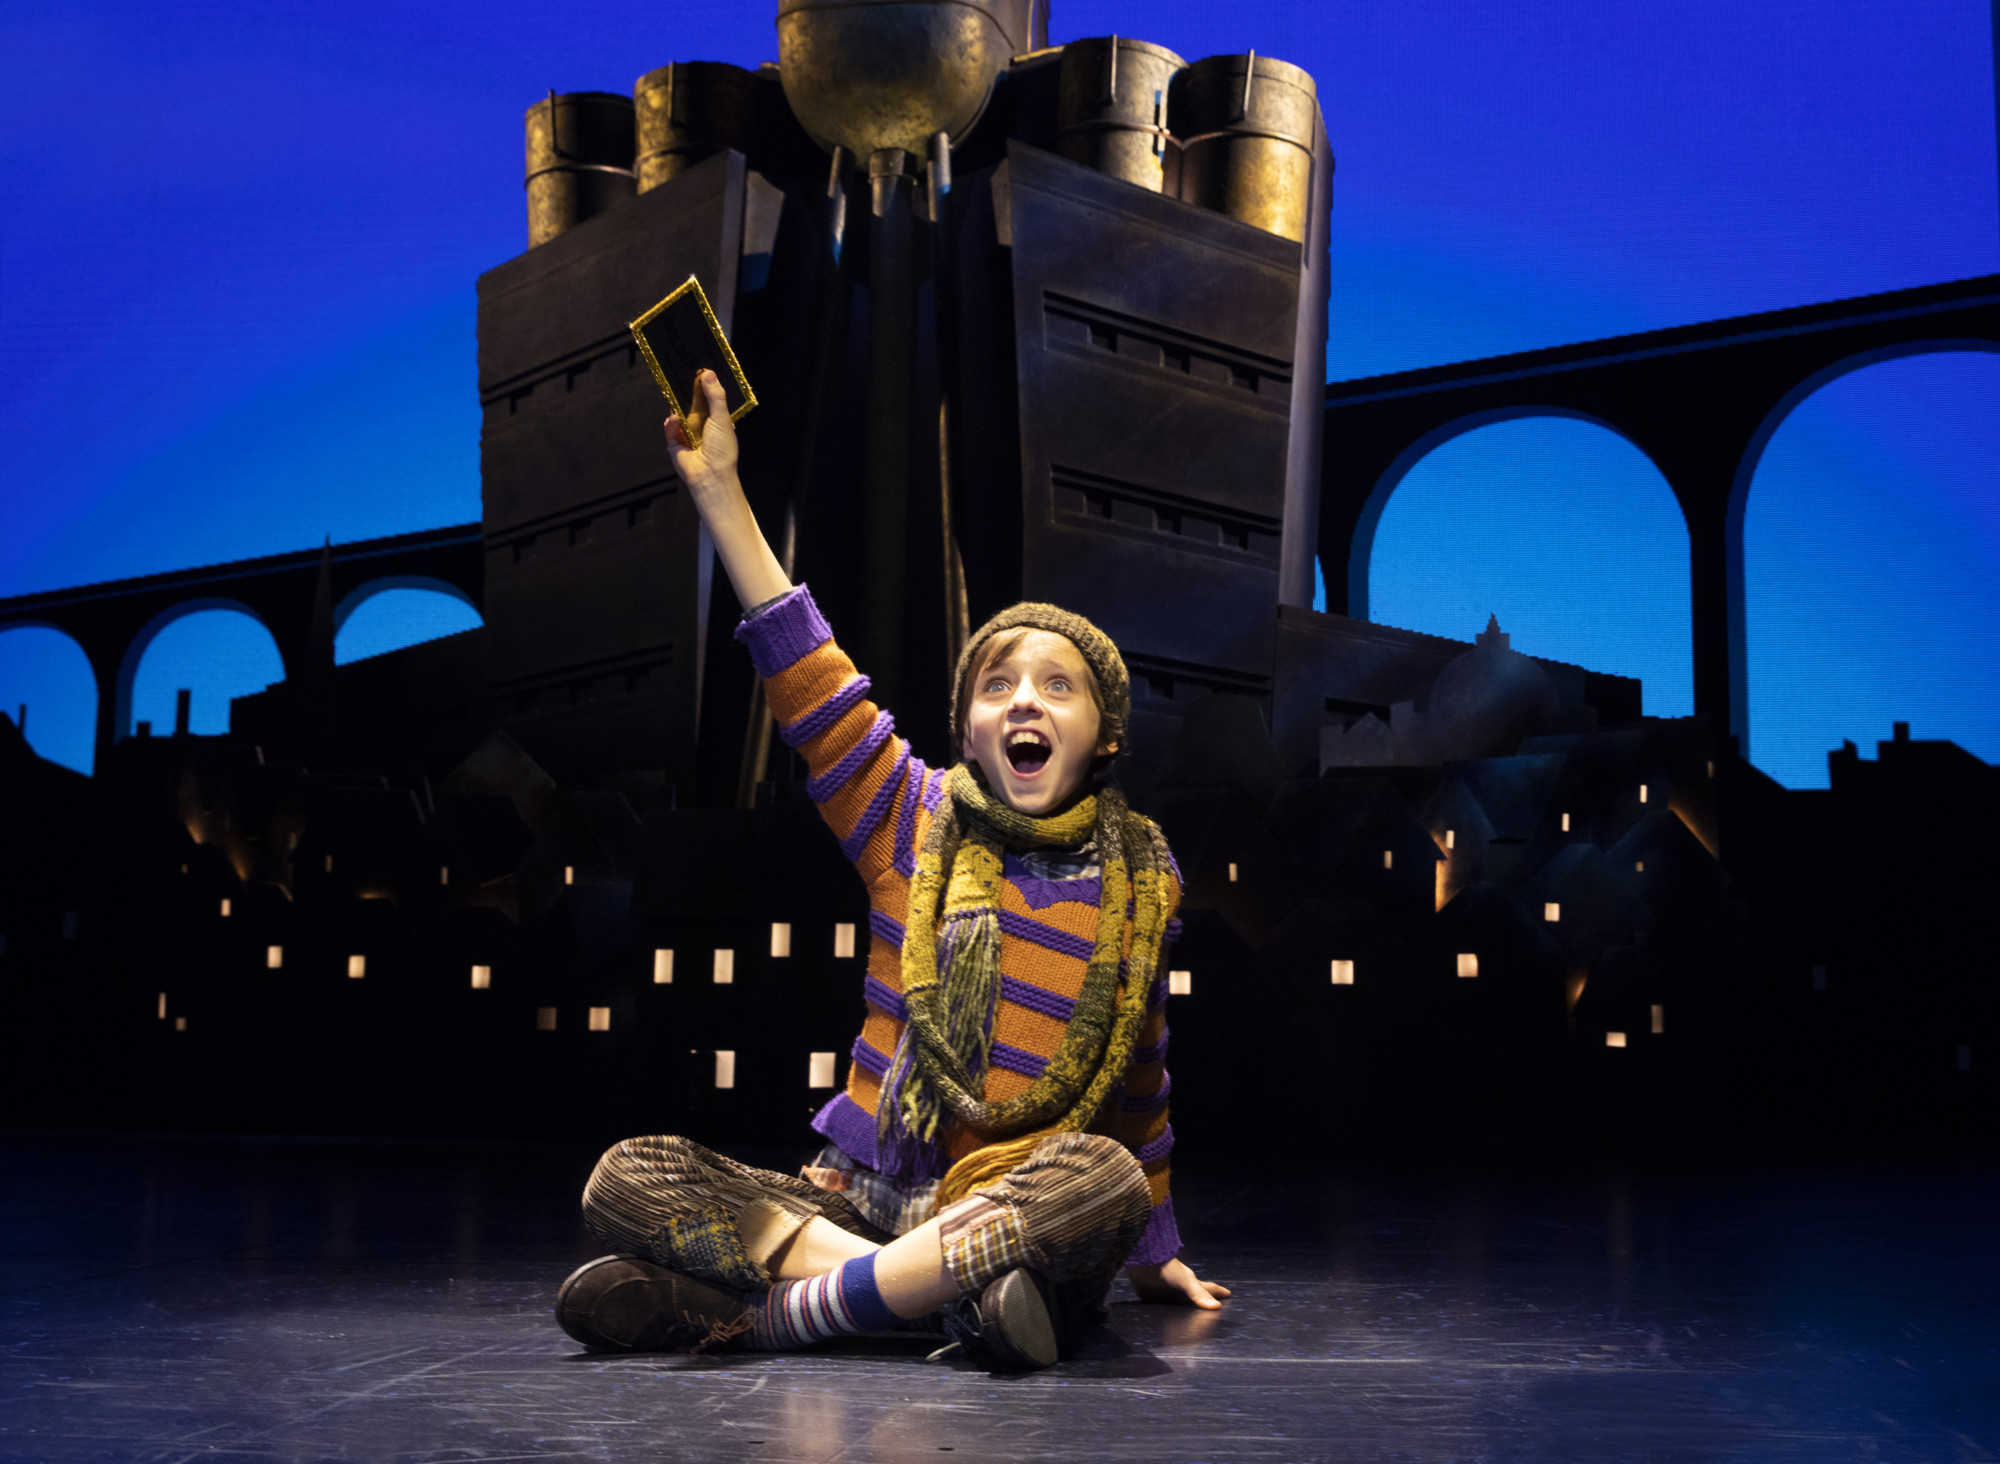 Charlie's got a golden ticket—and Roald Dahl fans surely have tickets for the musical version of 'Charlie and the Chocolate Factory.' (photo courtesy of the touring company)